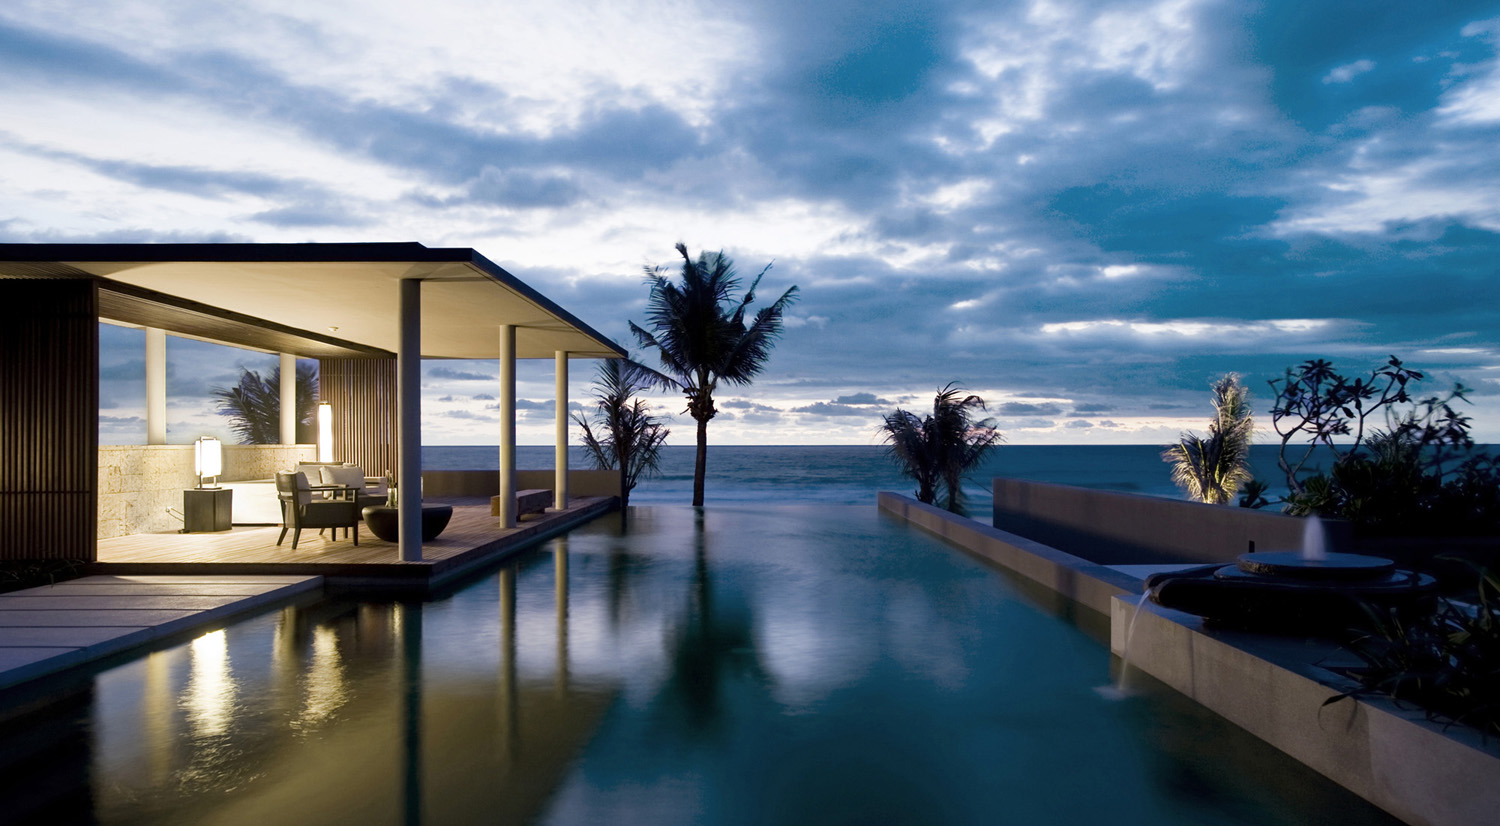 Exquisite-Exotic-Resort-Alila-Villas-Soori-in-Bali-by-SCDA-Architects-Homesthetics-12.jpg